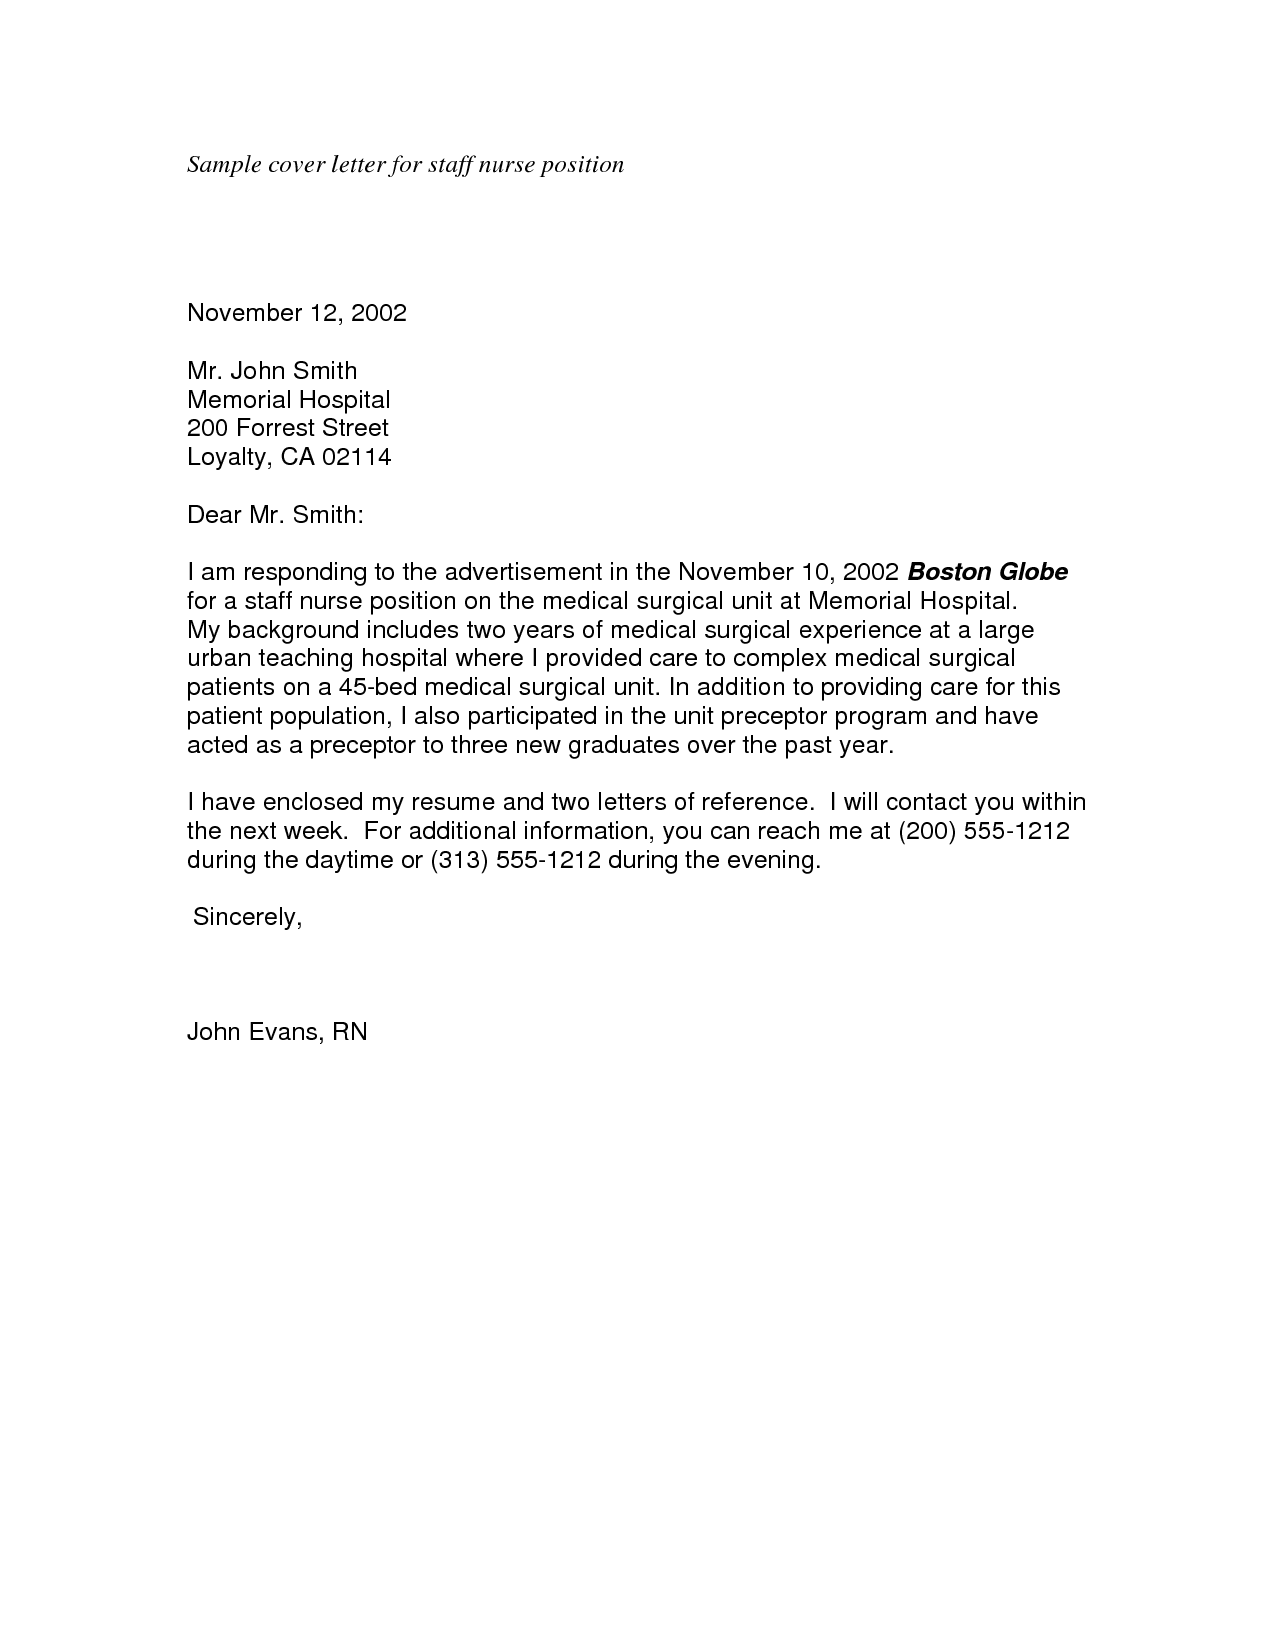 nursing cover letter samples sample cover letter for staff nurse position november mr